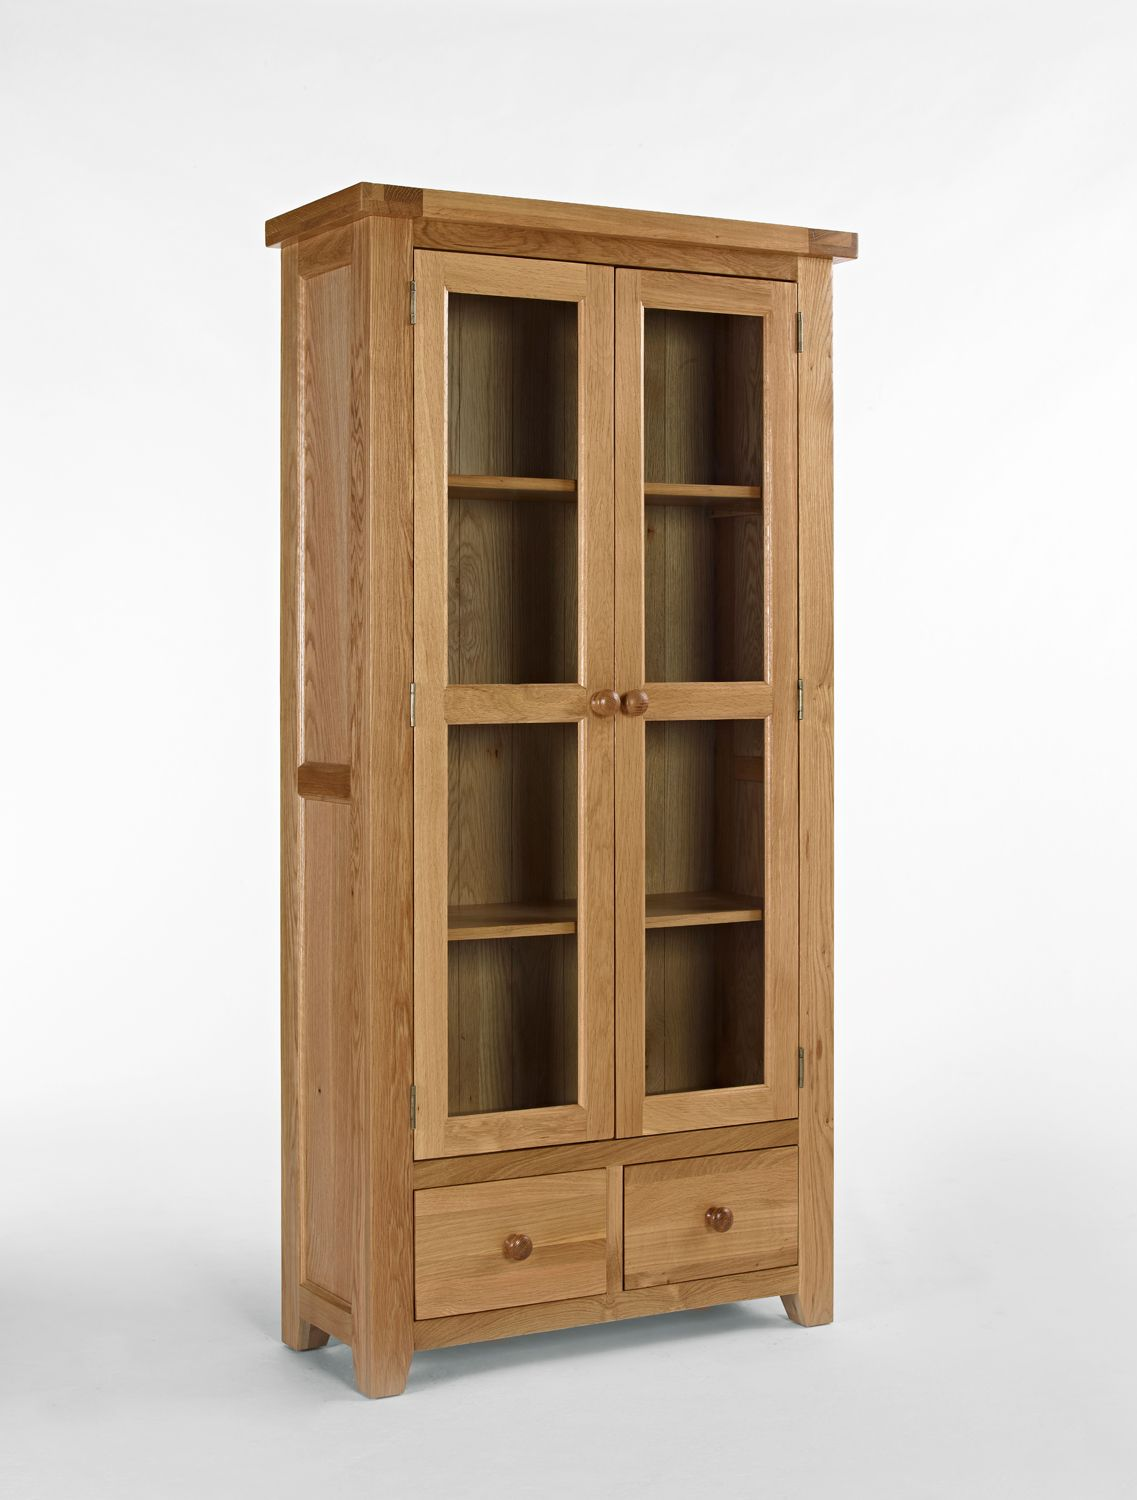 Dining Room Devon Oak Glass Display Cabinet Is A Great For Displaying